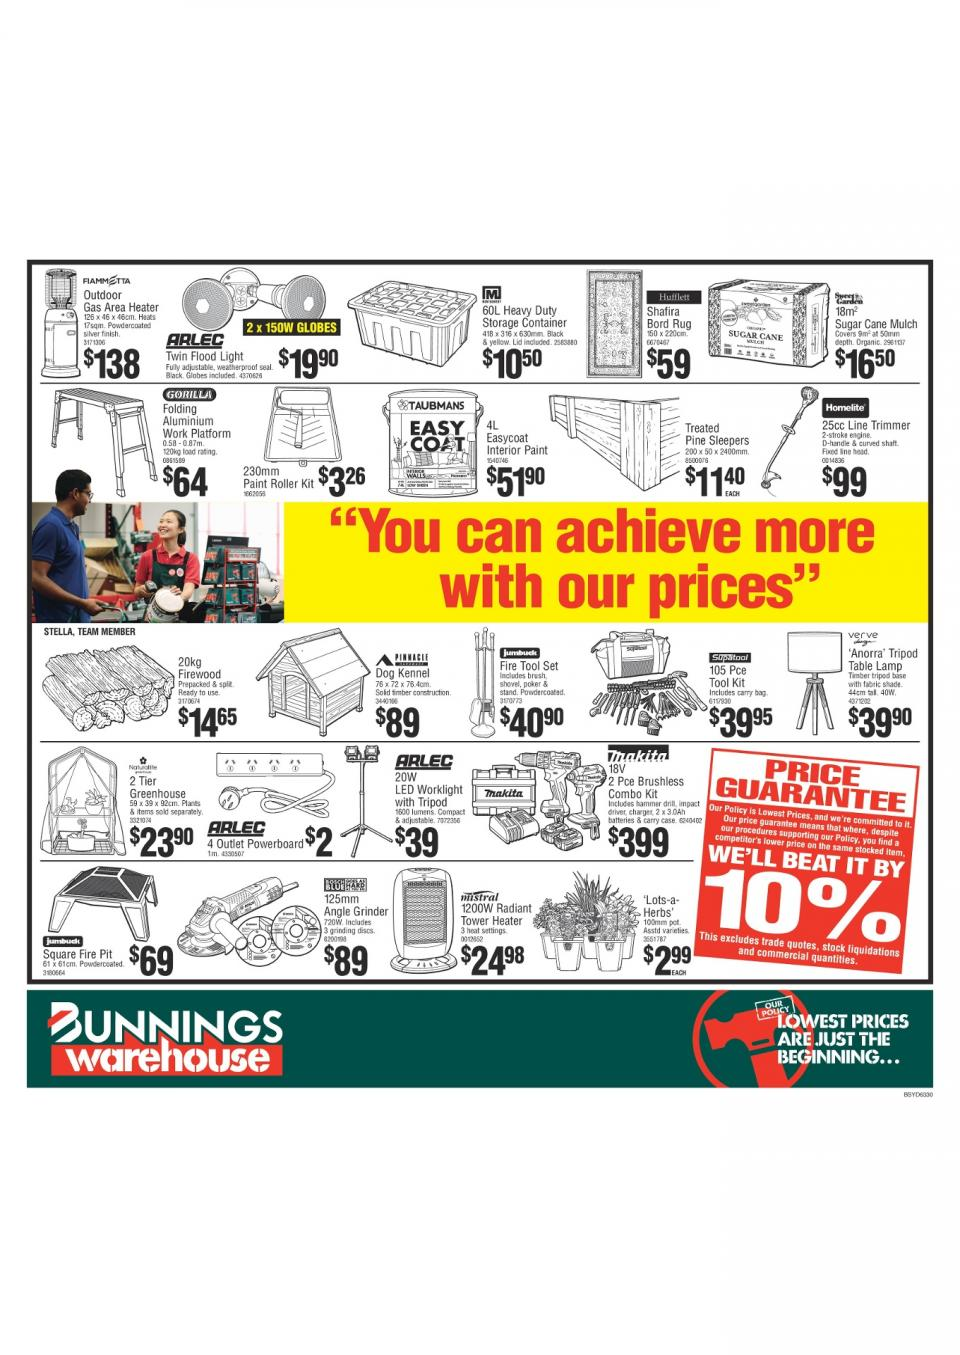 Bunnings Catalogue June 2018